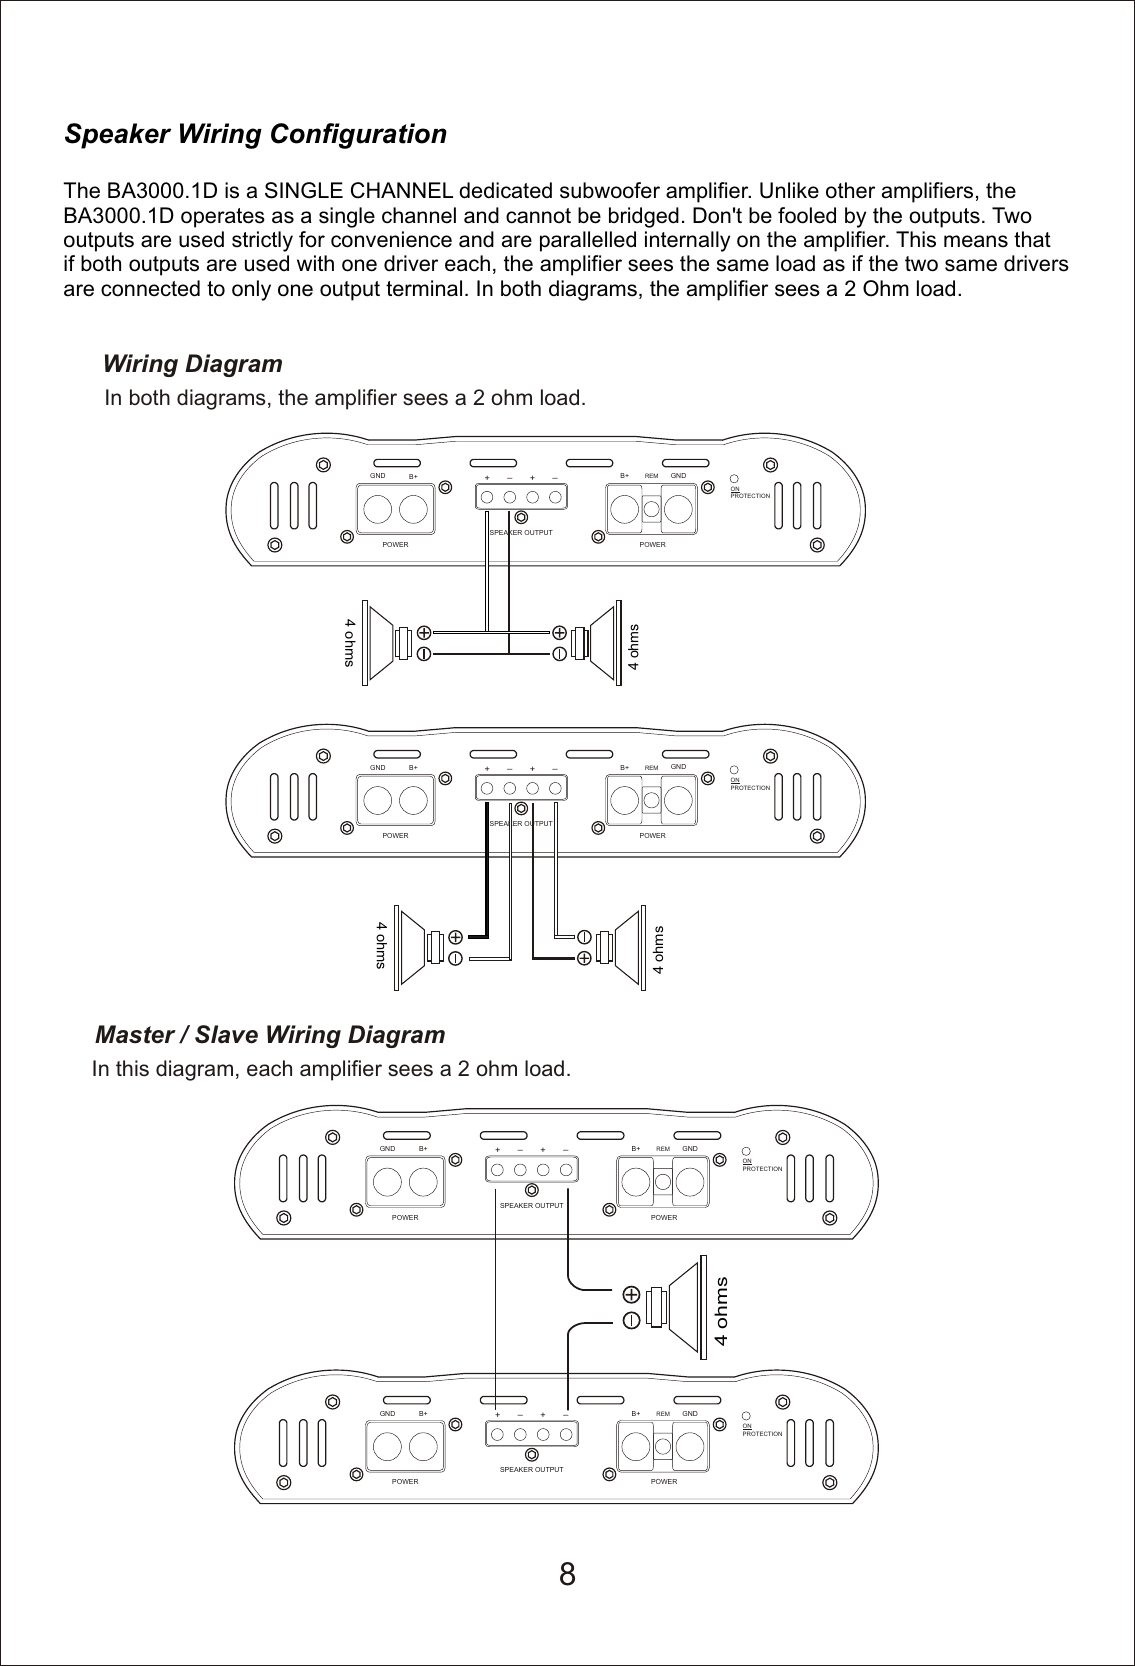 D Flip Flop 7474 Logic Diagram Wiring Master Blogs Of T Slave Presidential Furnace Reset